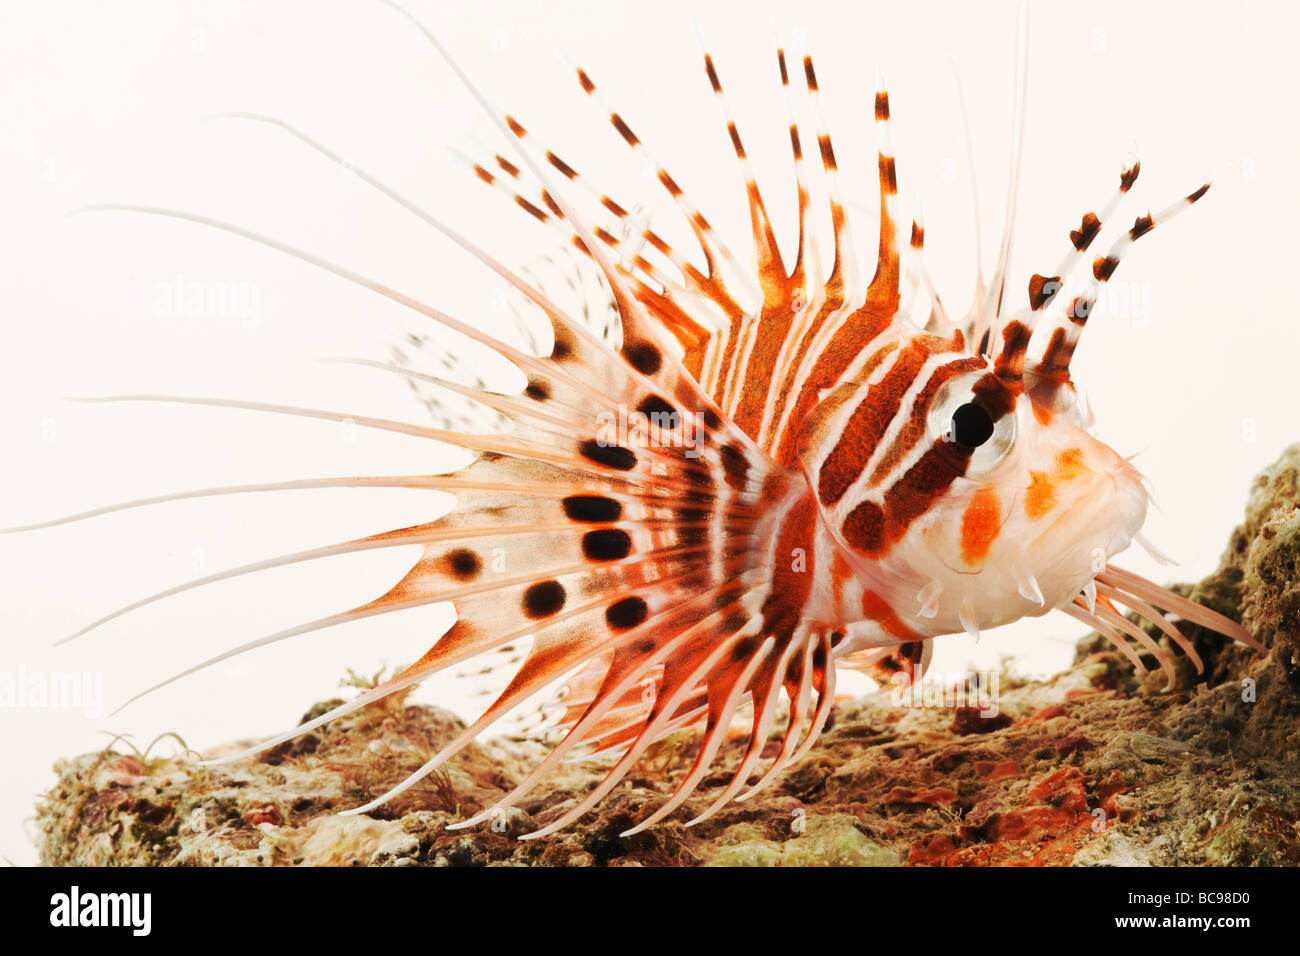 Méné bleu poisson Lion poissons marins tropicaux Photo Stock